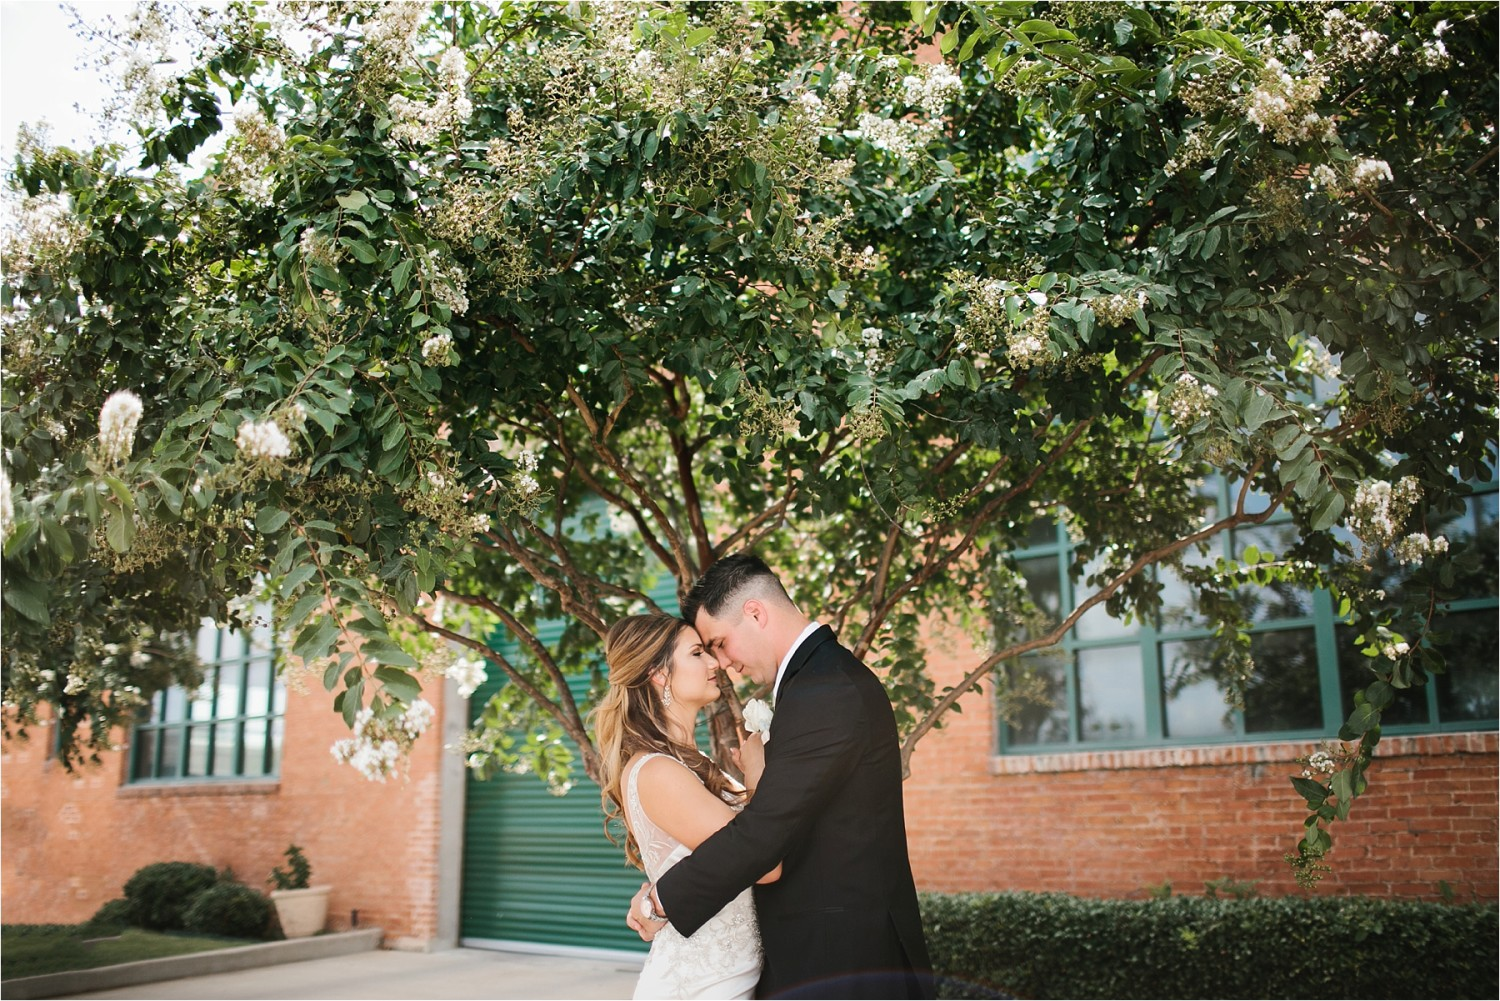 Holly + Jordan __ a black, gold, and greenery organic wedding at The Phoenix Ballroom in Waco, TX by North Texas Wedding Photographer Rachel Meagan Photography __ 42